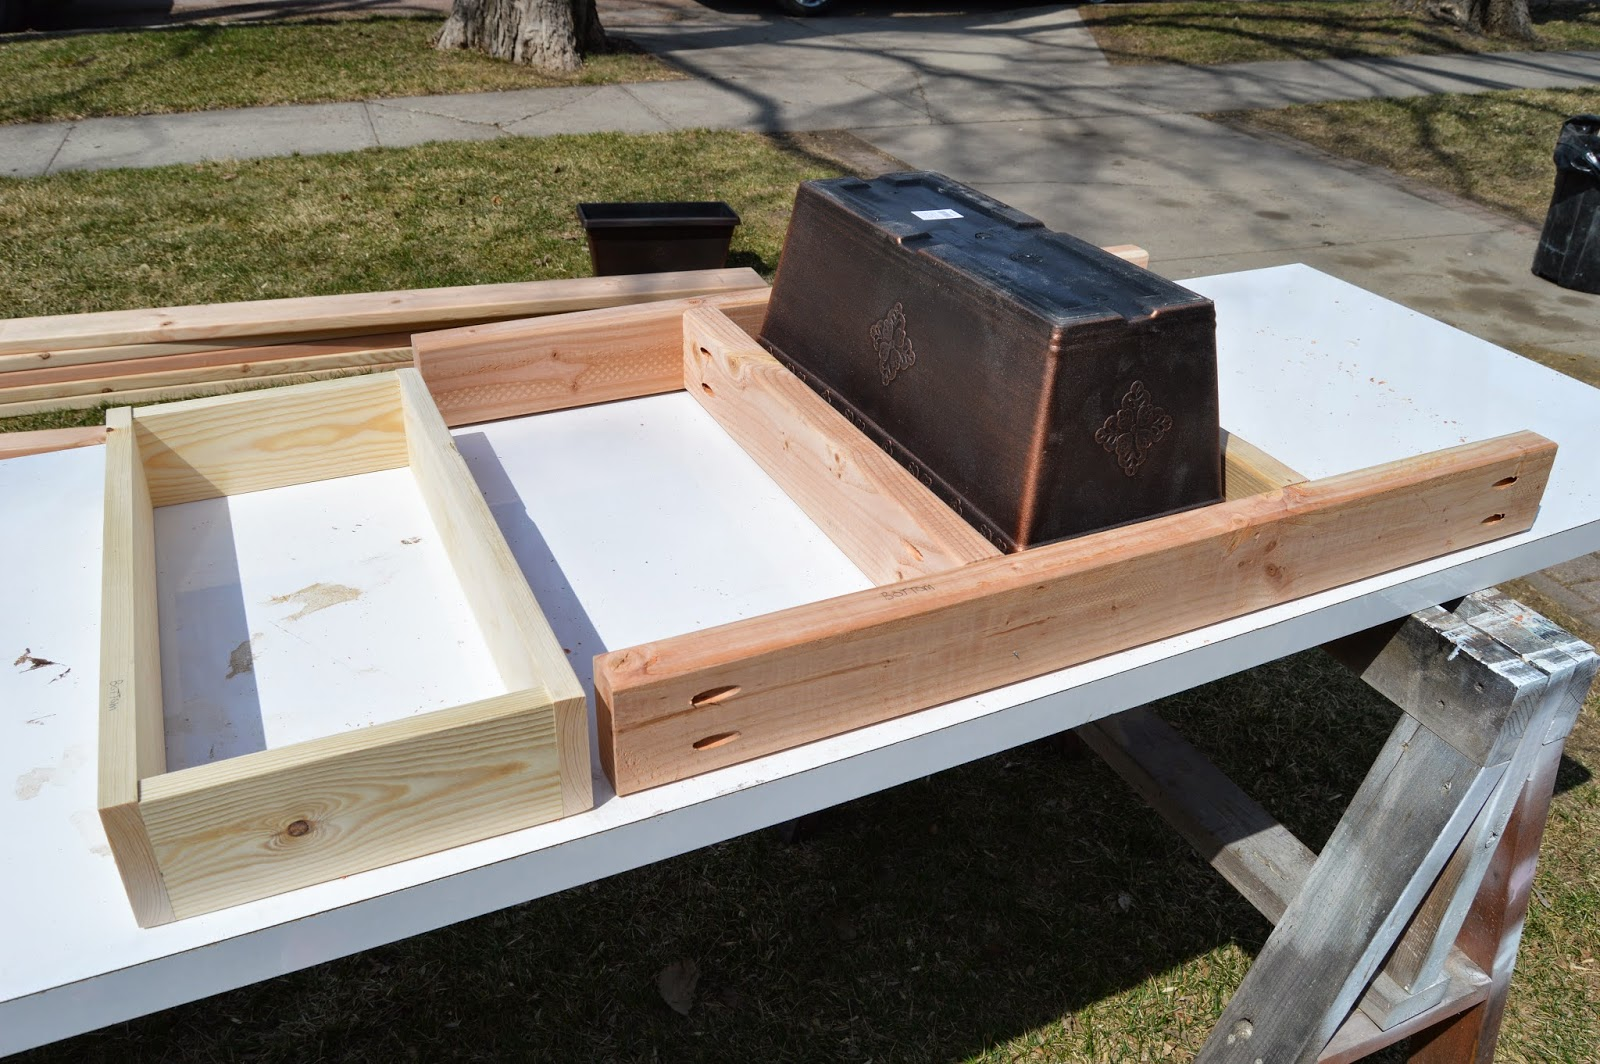 Table Exterieur Bois - Build a Patio Table with Built In Ice Boxes u2013 Remodelaholic